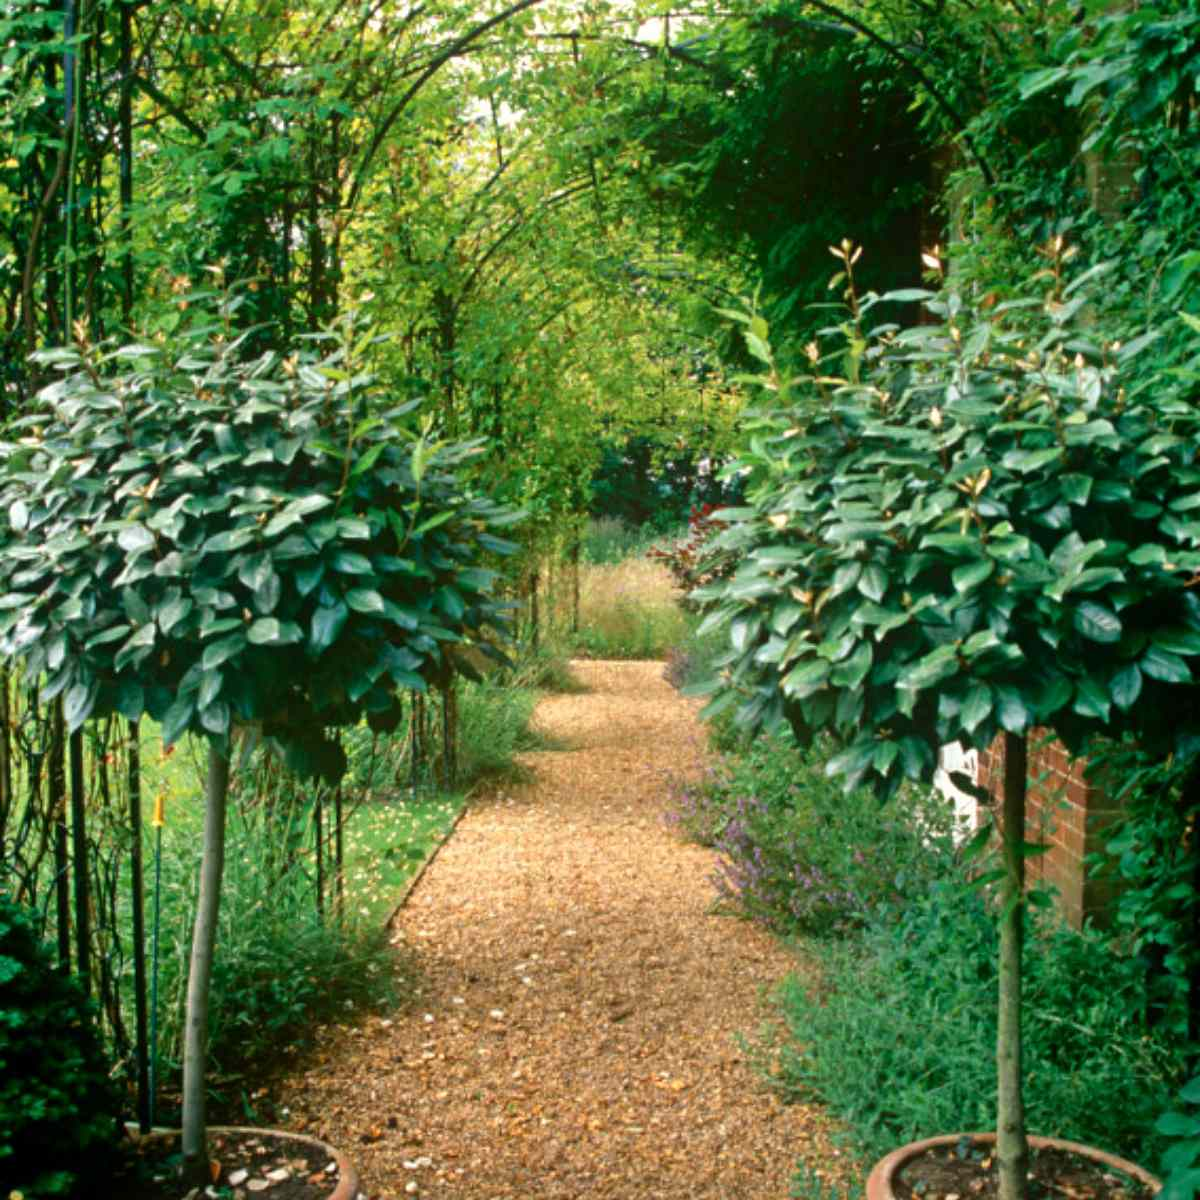 Shade garden with two potted trees and vine-covered archway.